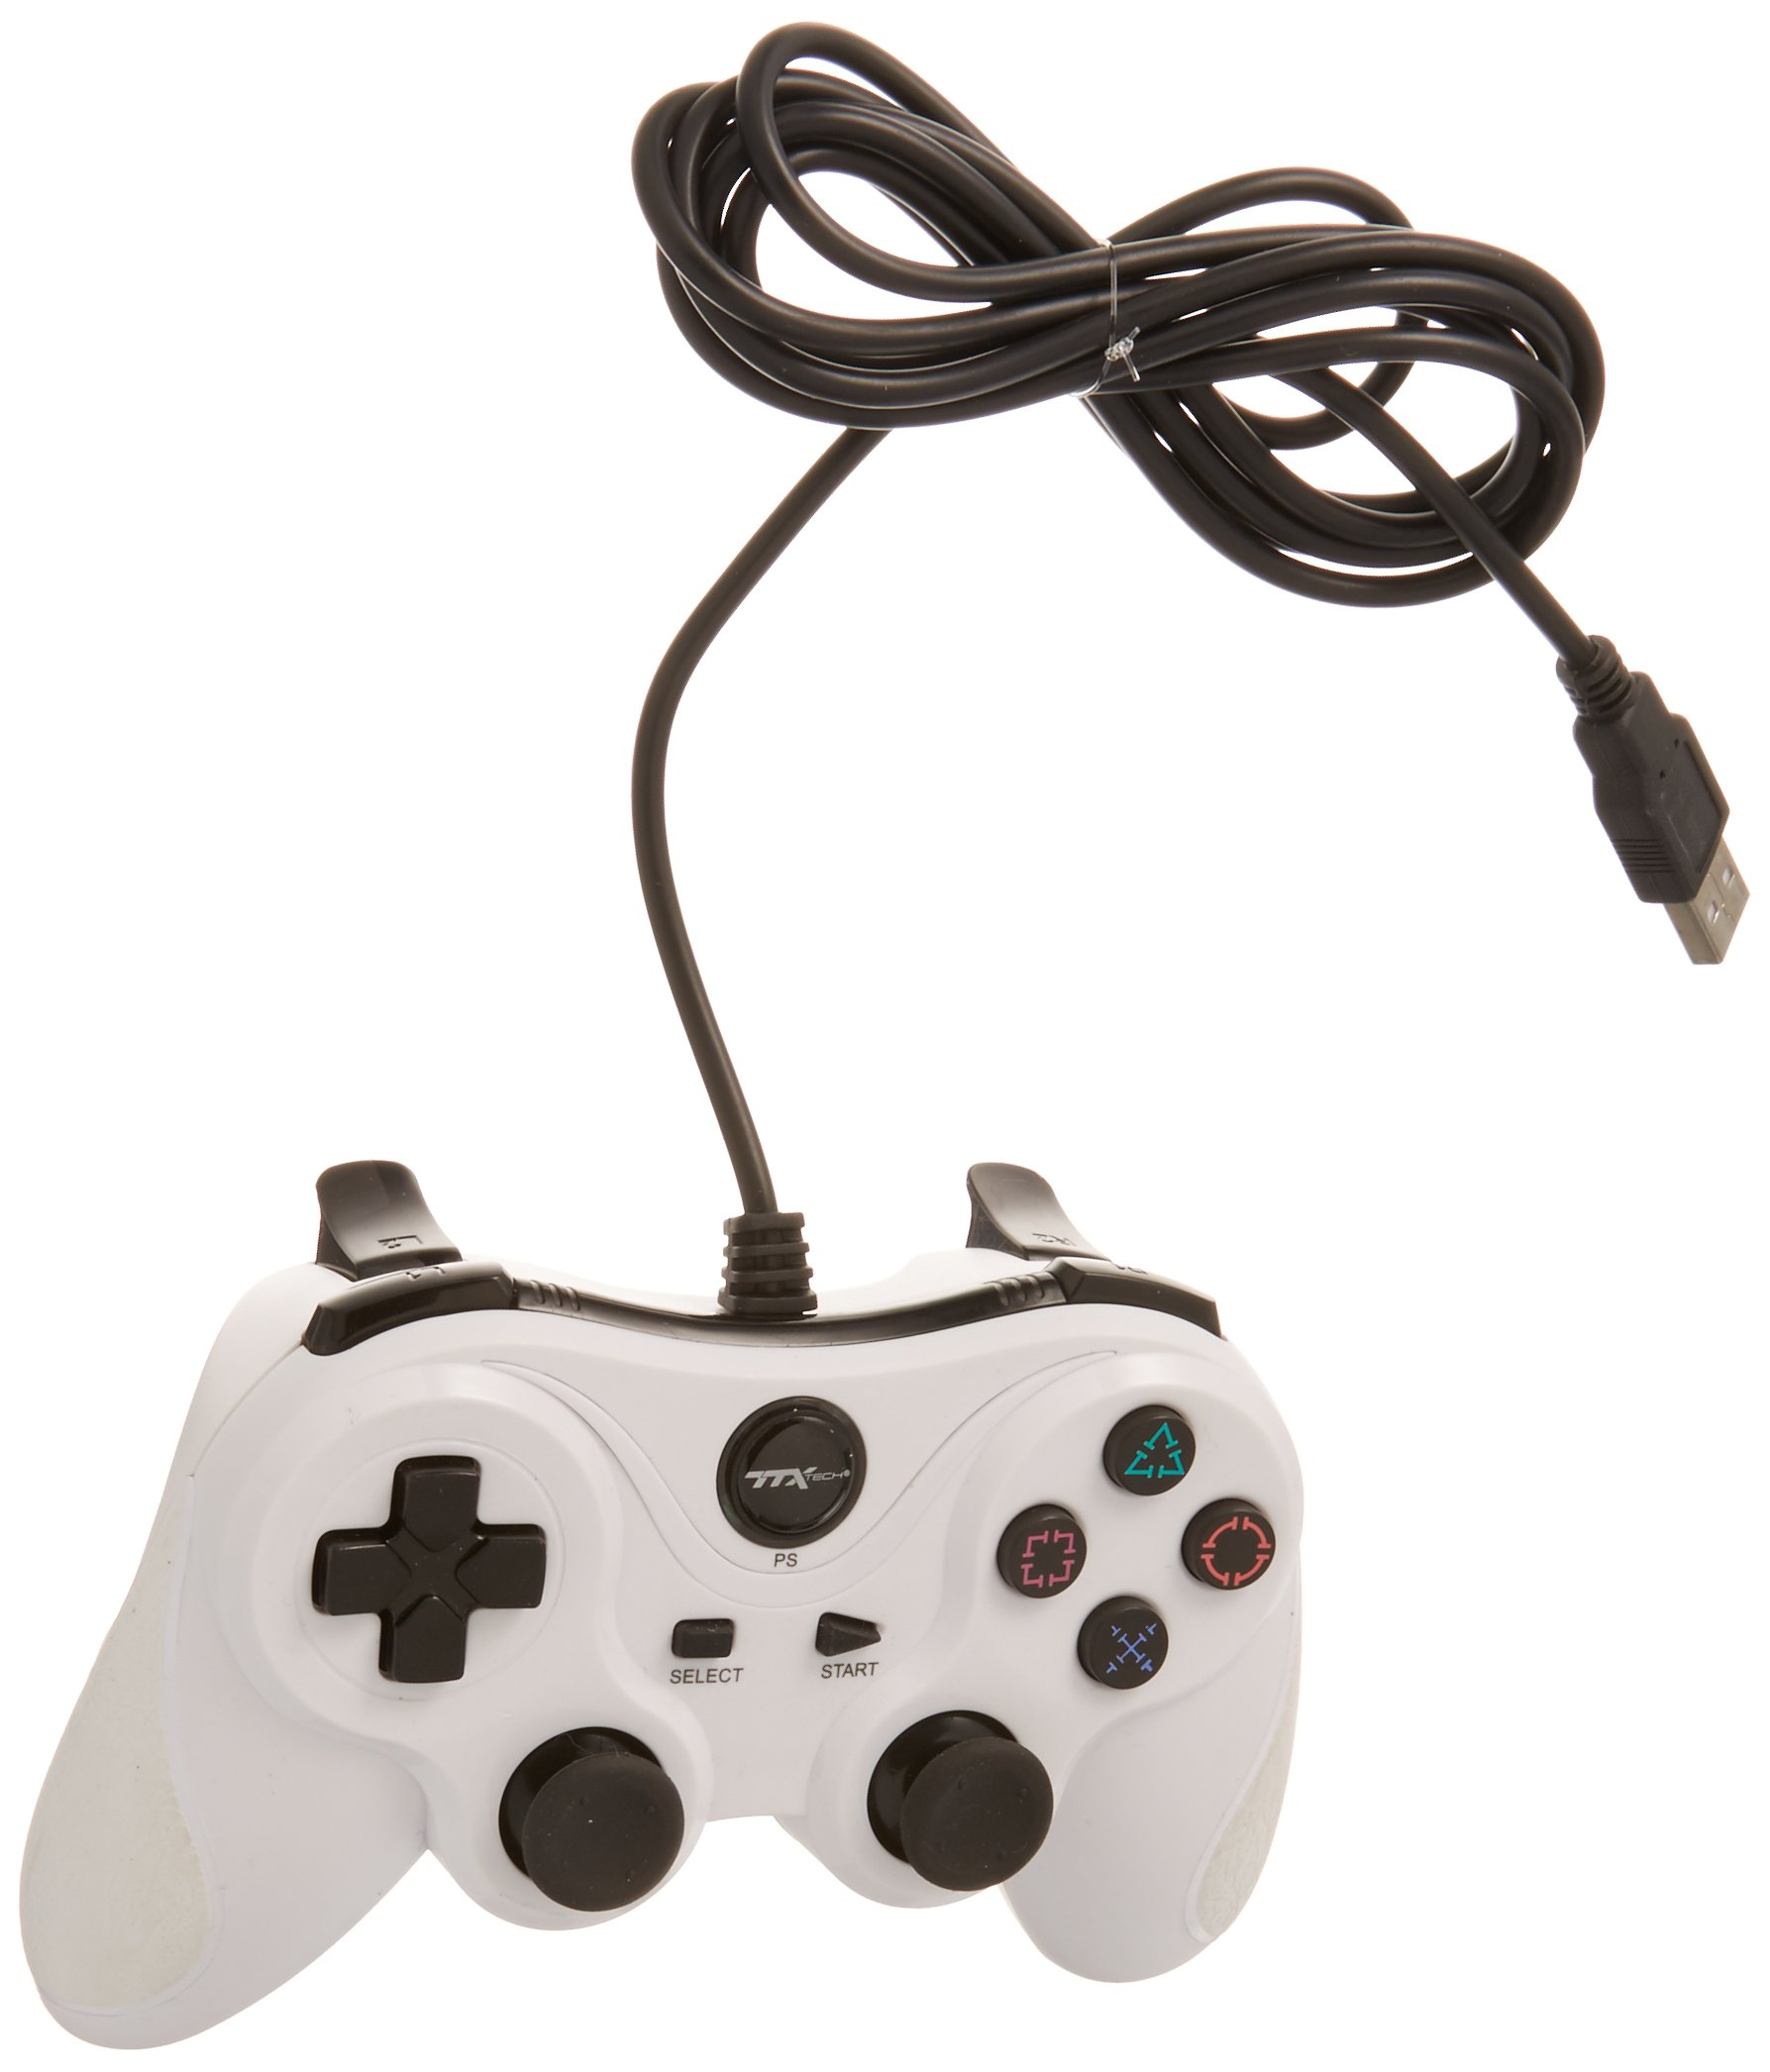 TTX PS3 Wired USB Controller - White